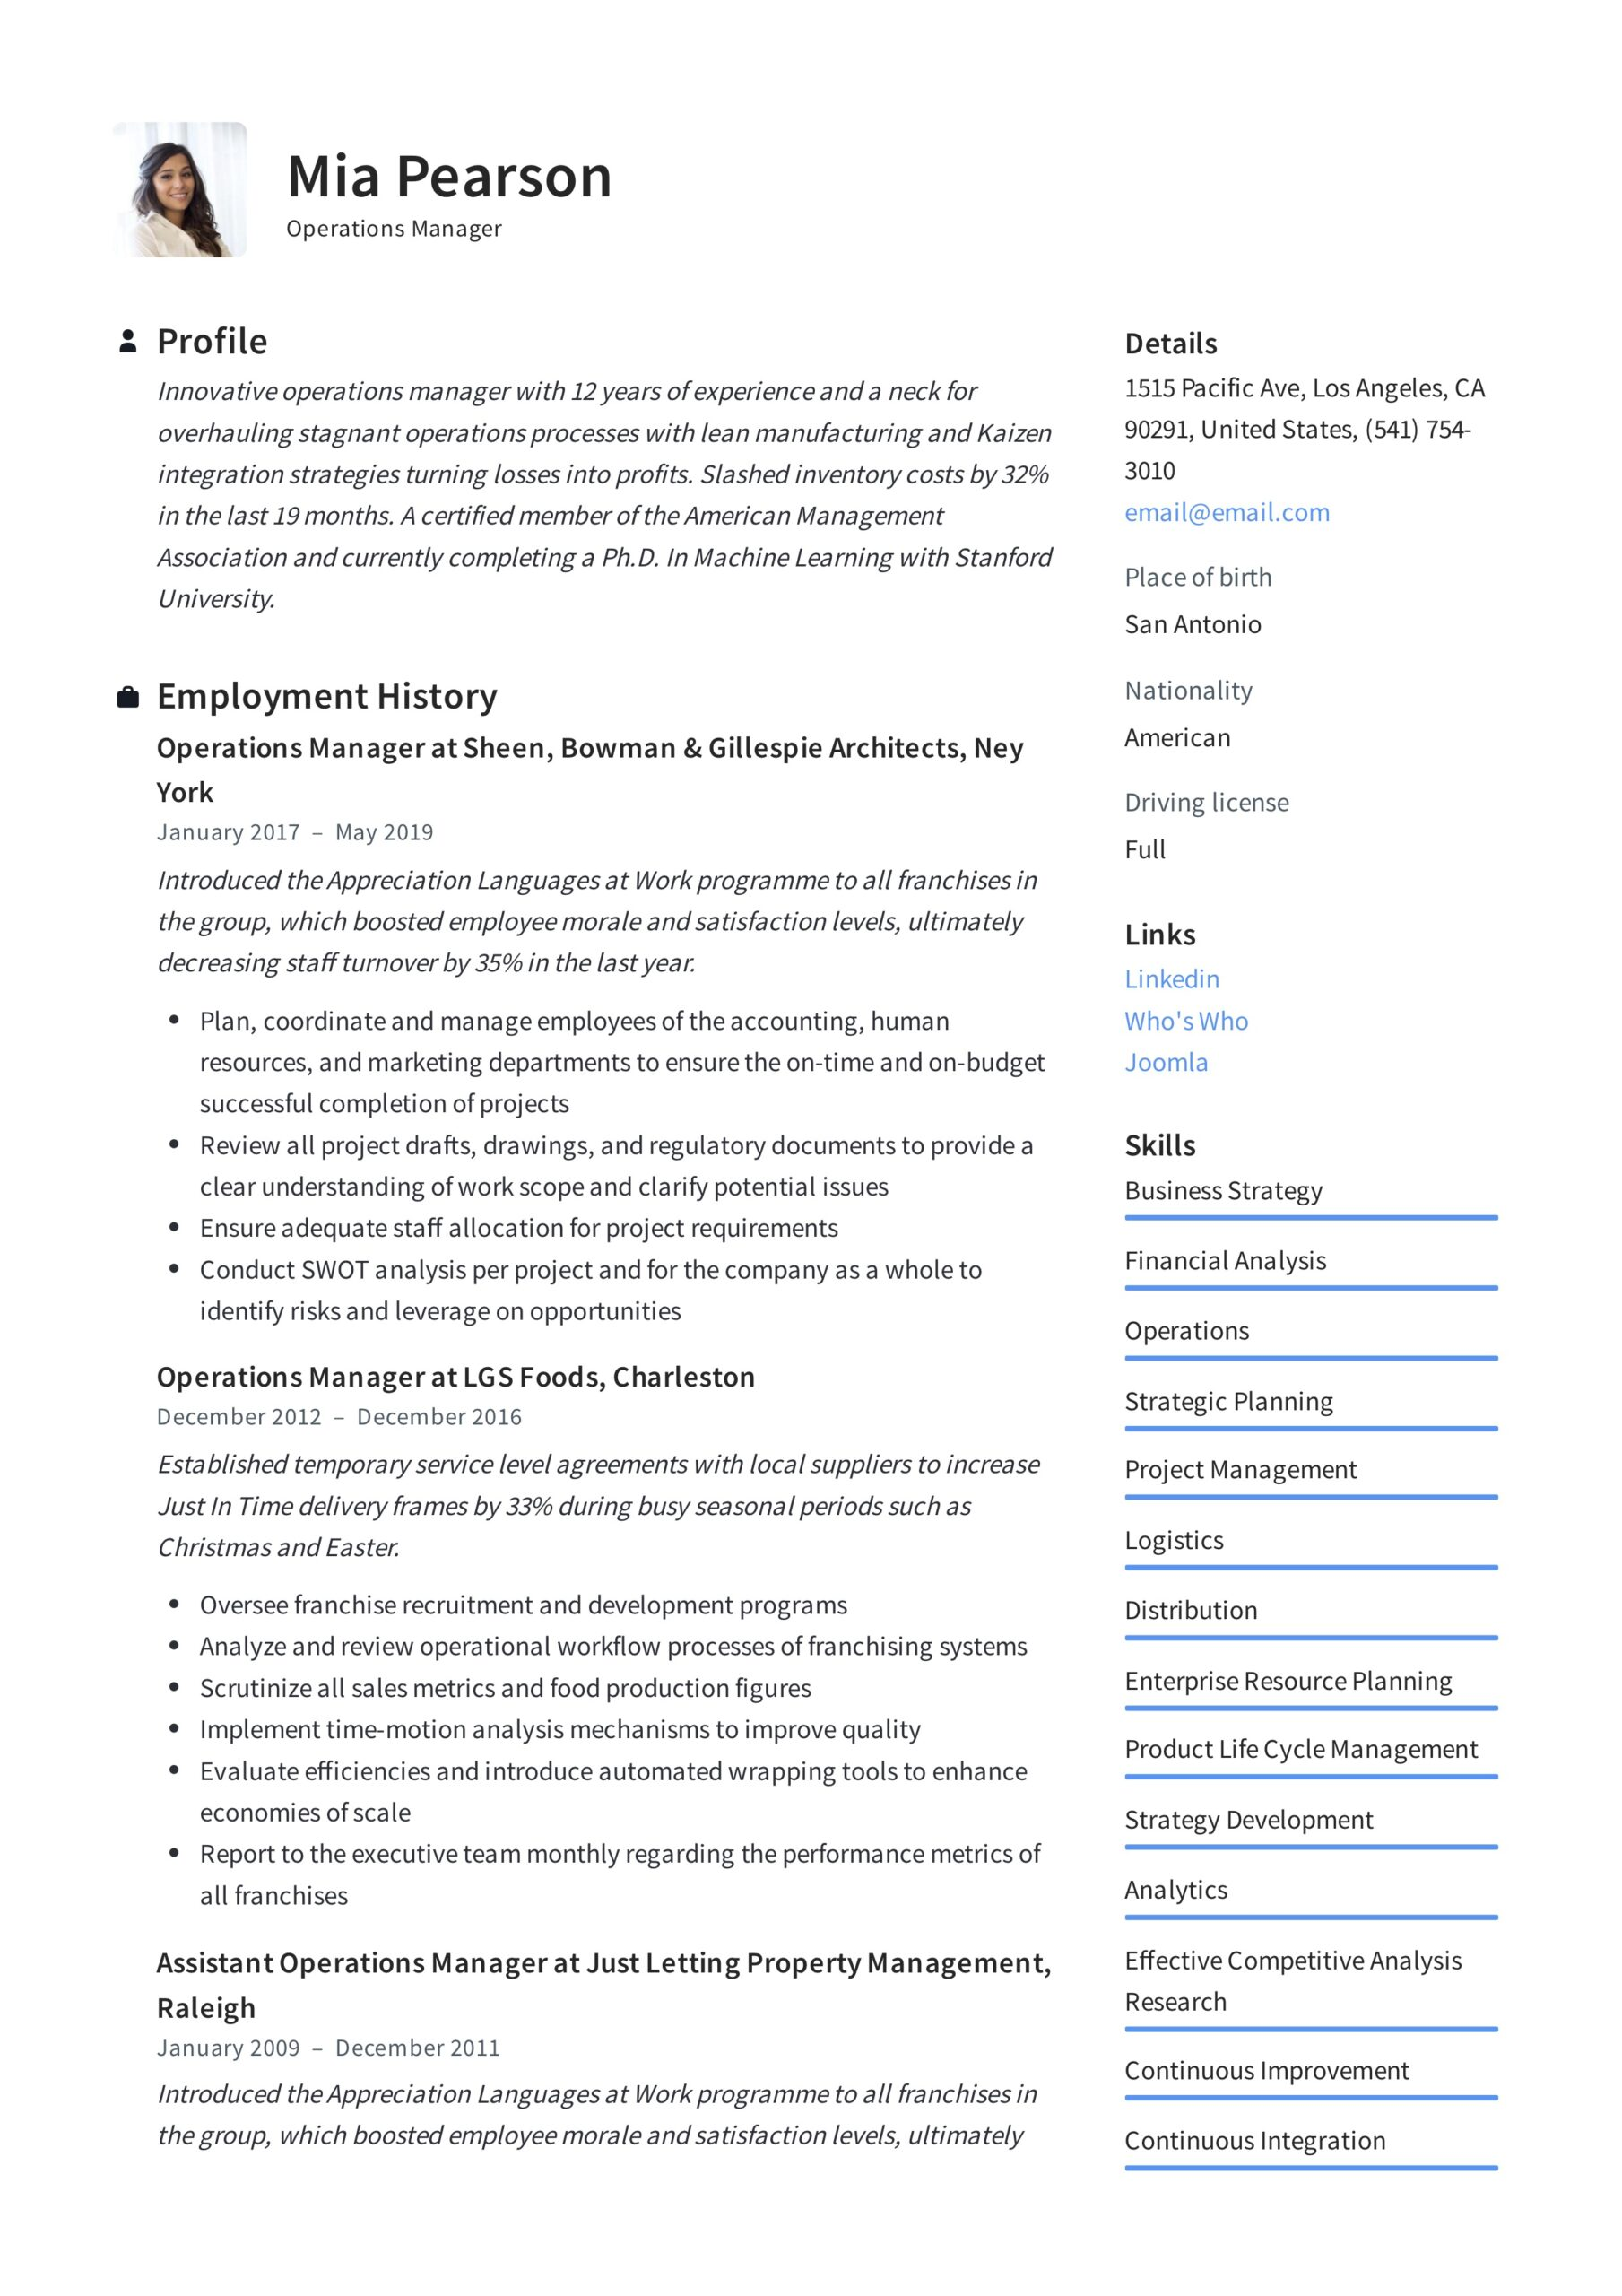 operations manager resume writing guide examples pdf sample example babysitting skills Resume Operations Manager Resume Sample